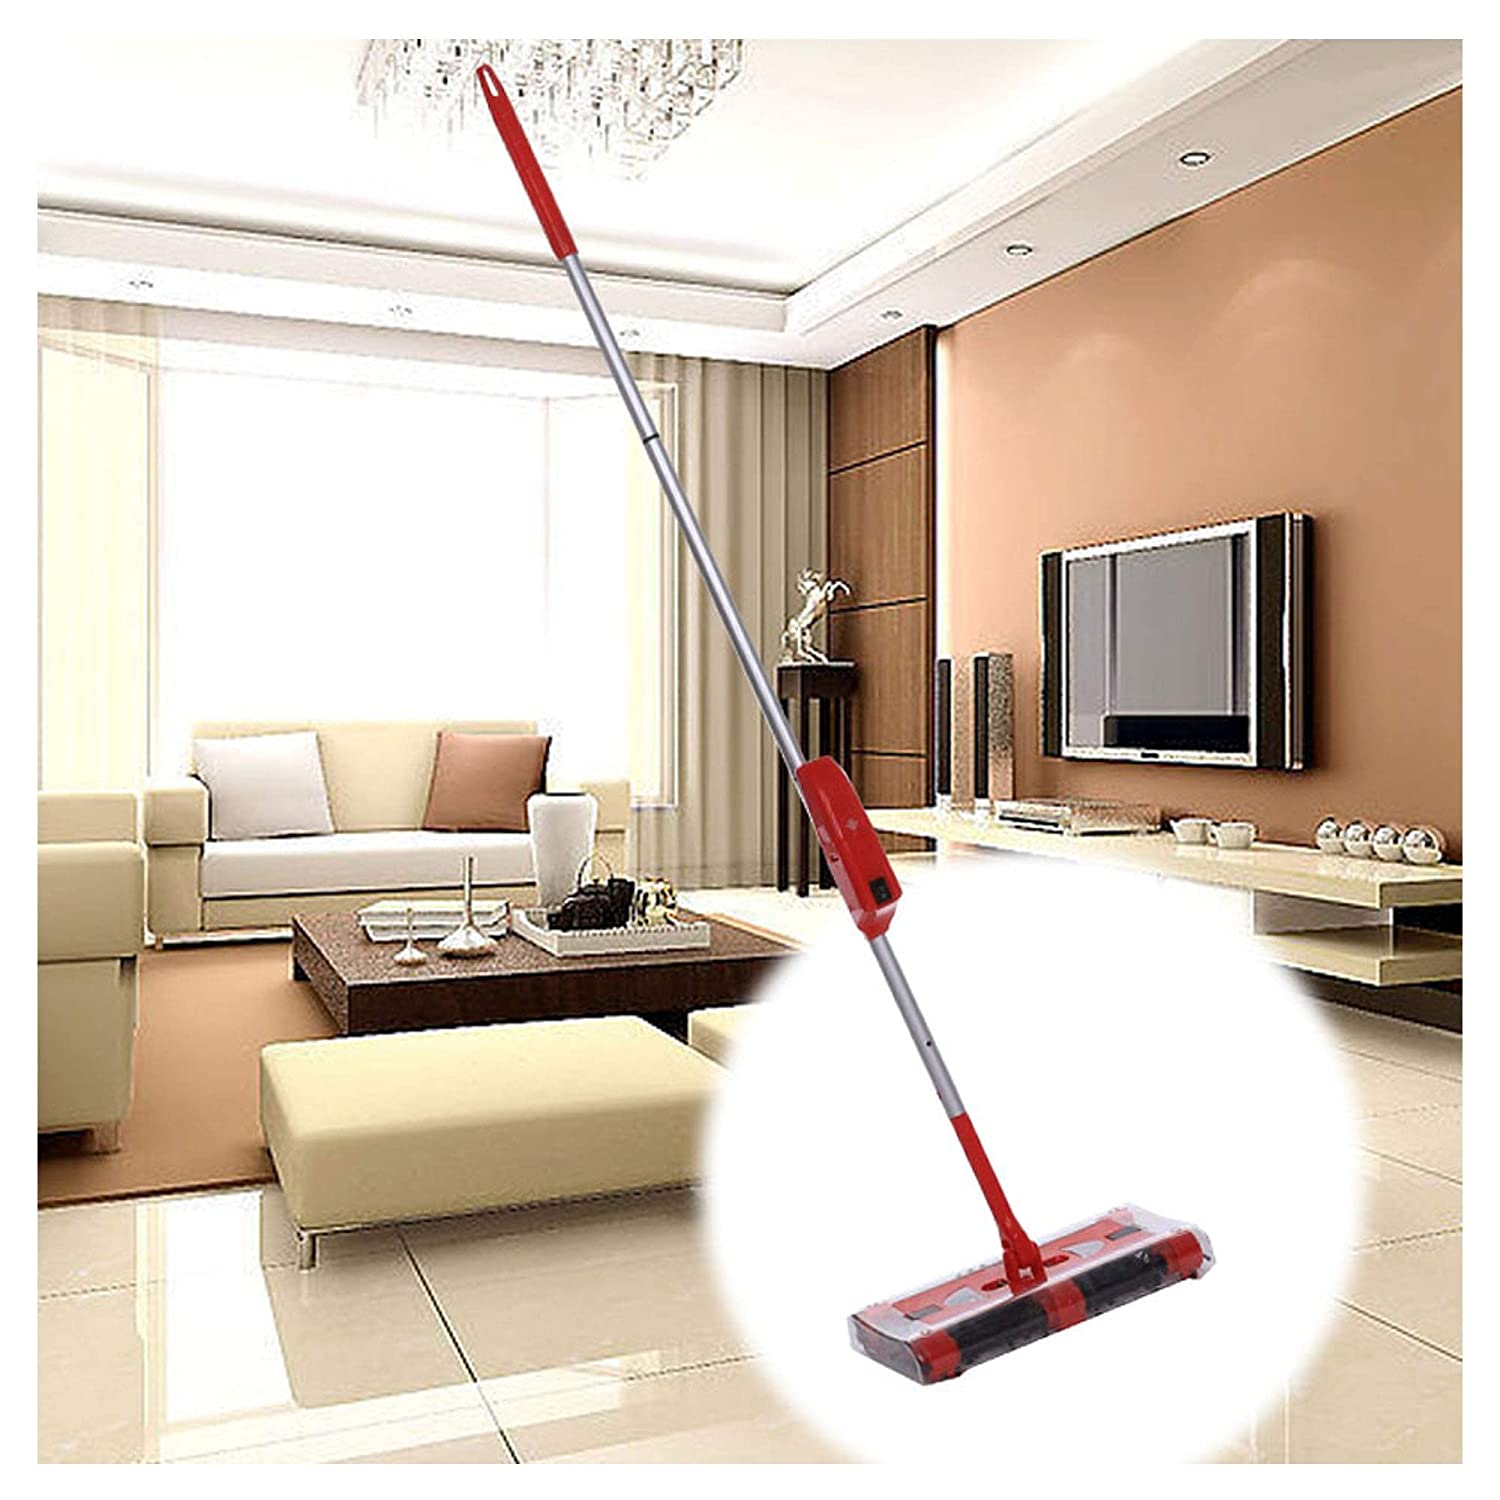 Hotouch Cordless Swivel Sweeper Floor Carpet Rechargeable Stick Vacuum Clean Quick